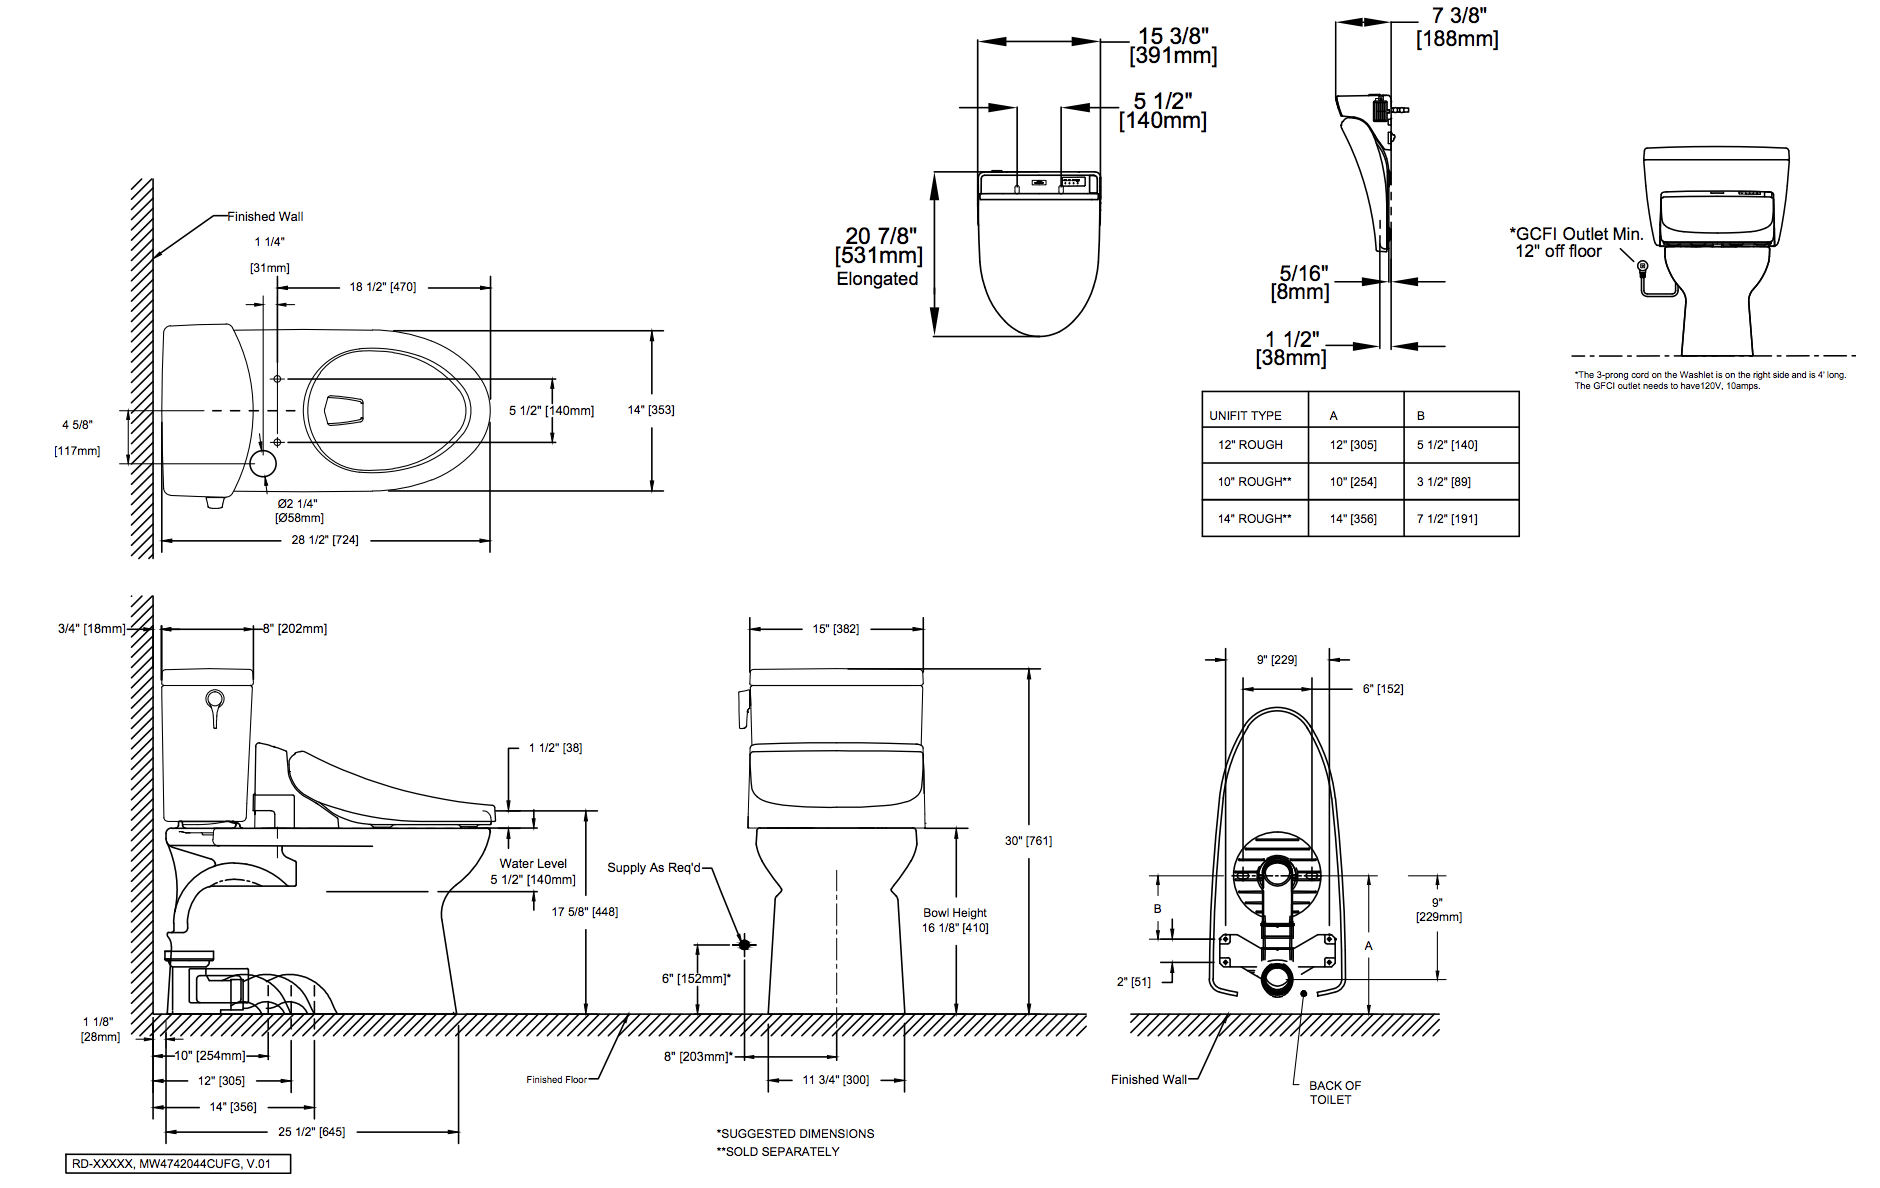 toto-vespin-ii-1g-washlet-c200-two-piece-toilet-and-bidet-system-1.0-gpf-diagram.png